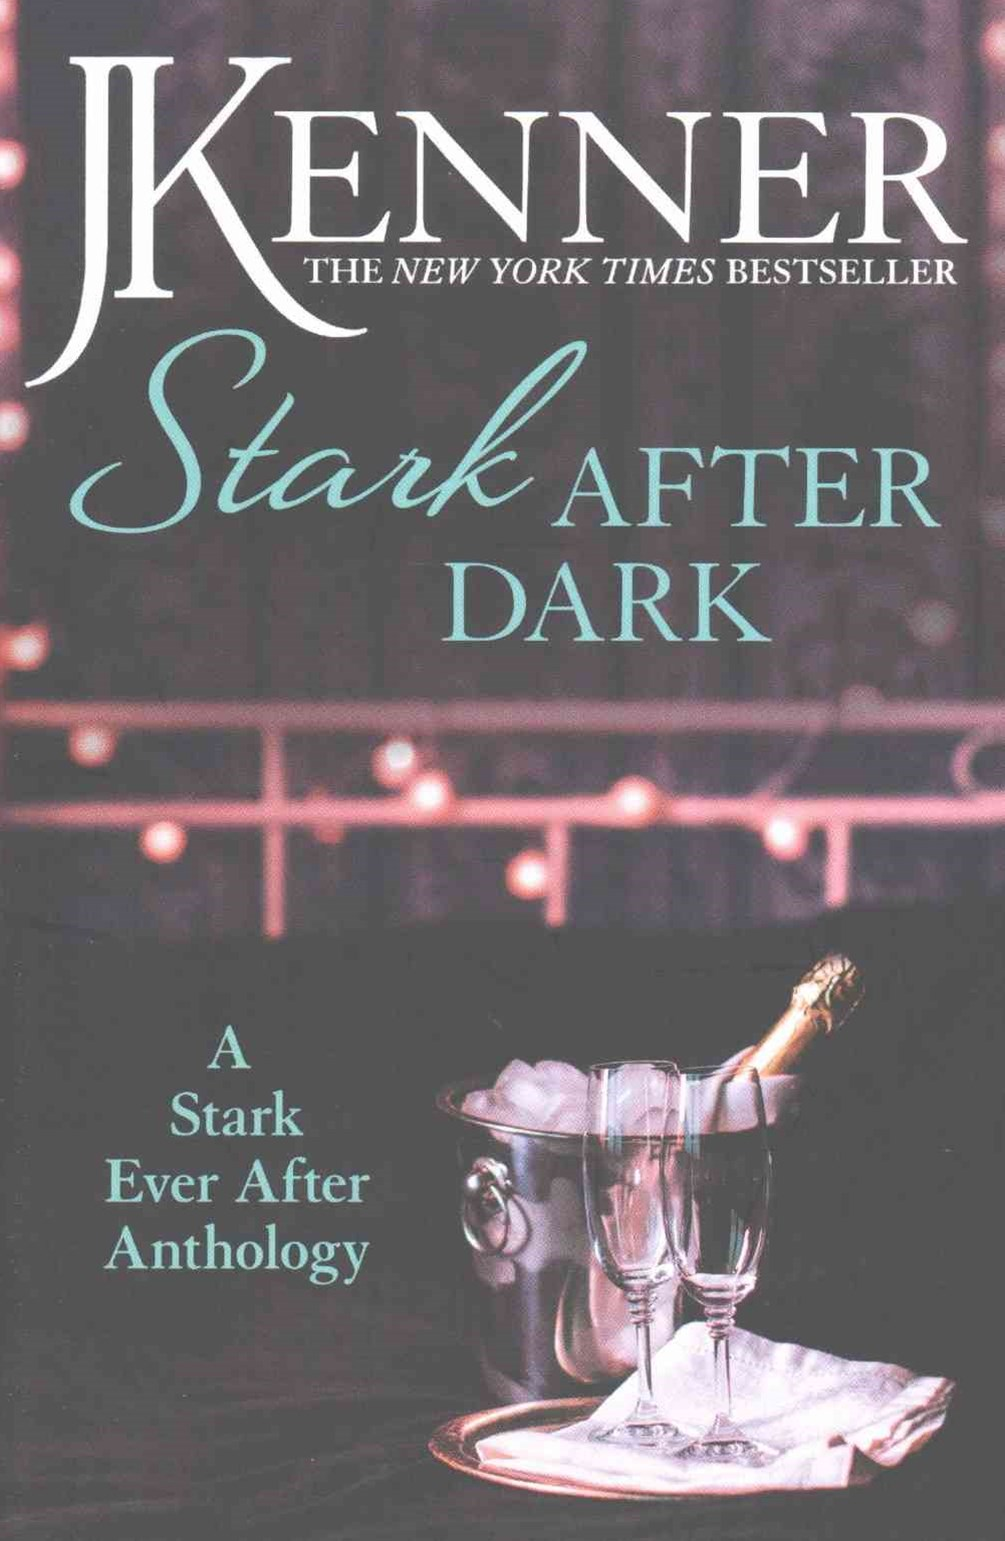 Stark After Dark: A Stark Ever After Anthology (Take Me, Have Me, Play Me Game, Seduce Me)